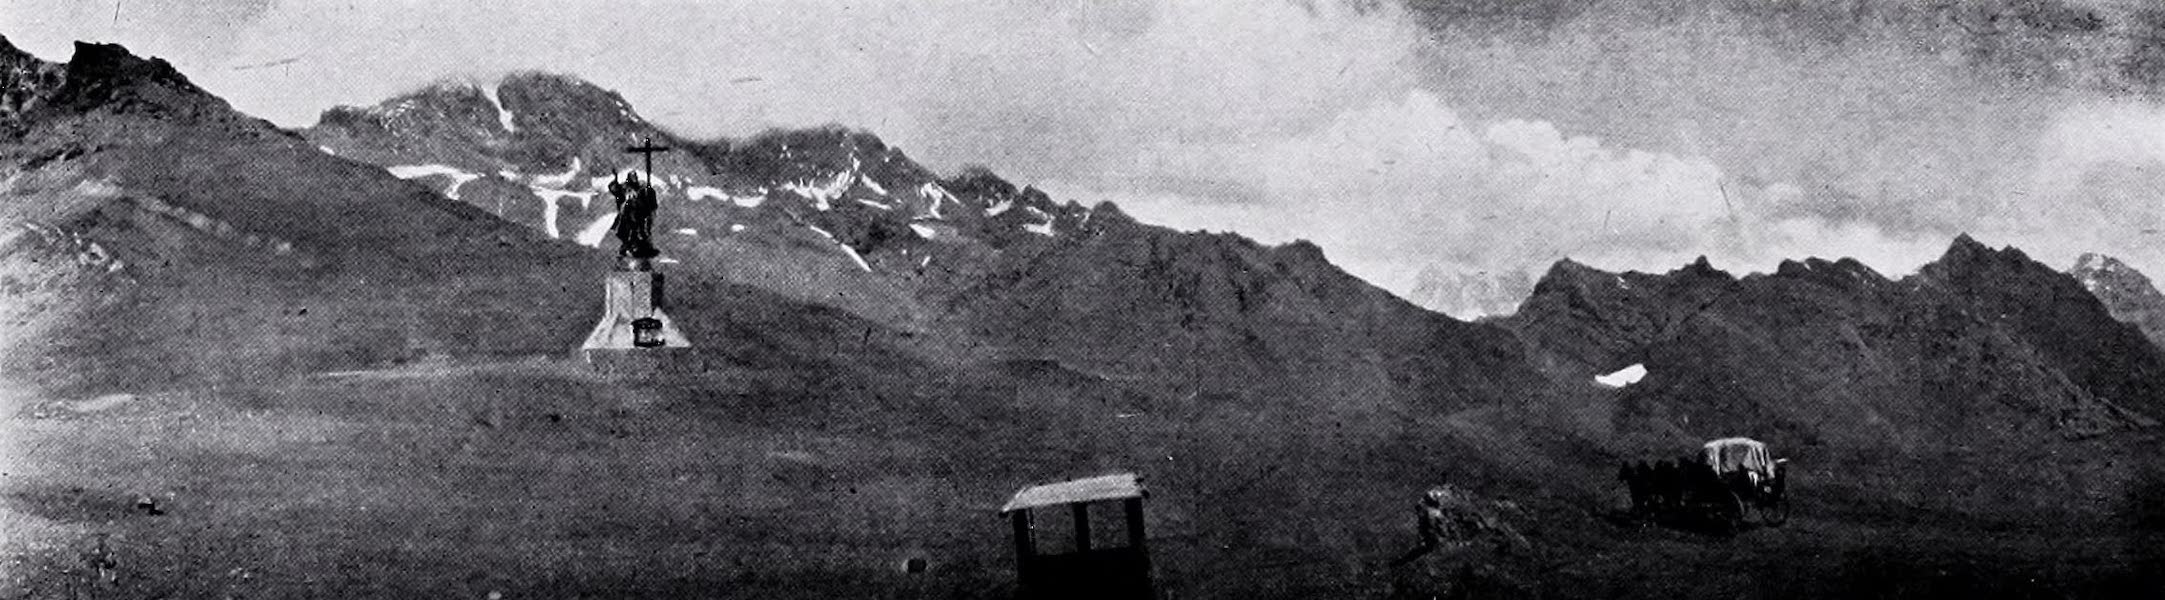 Argentina, Past and Present - Statue of Christ on the Cumbre (1914)